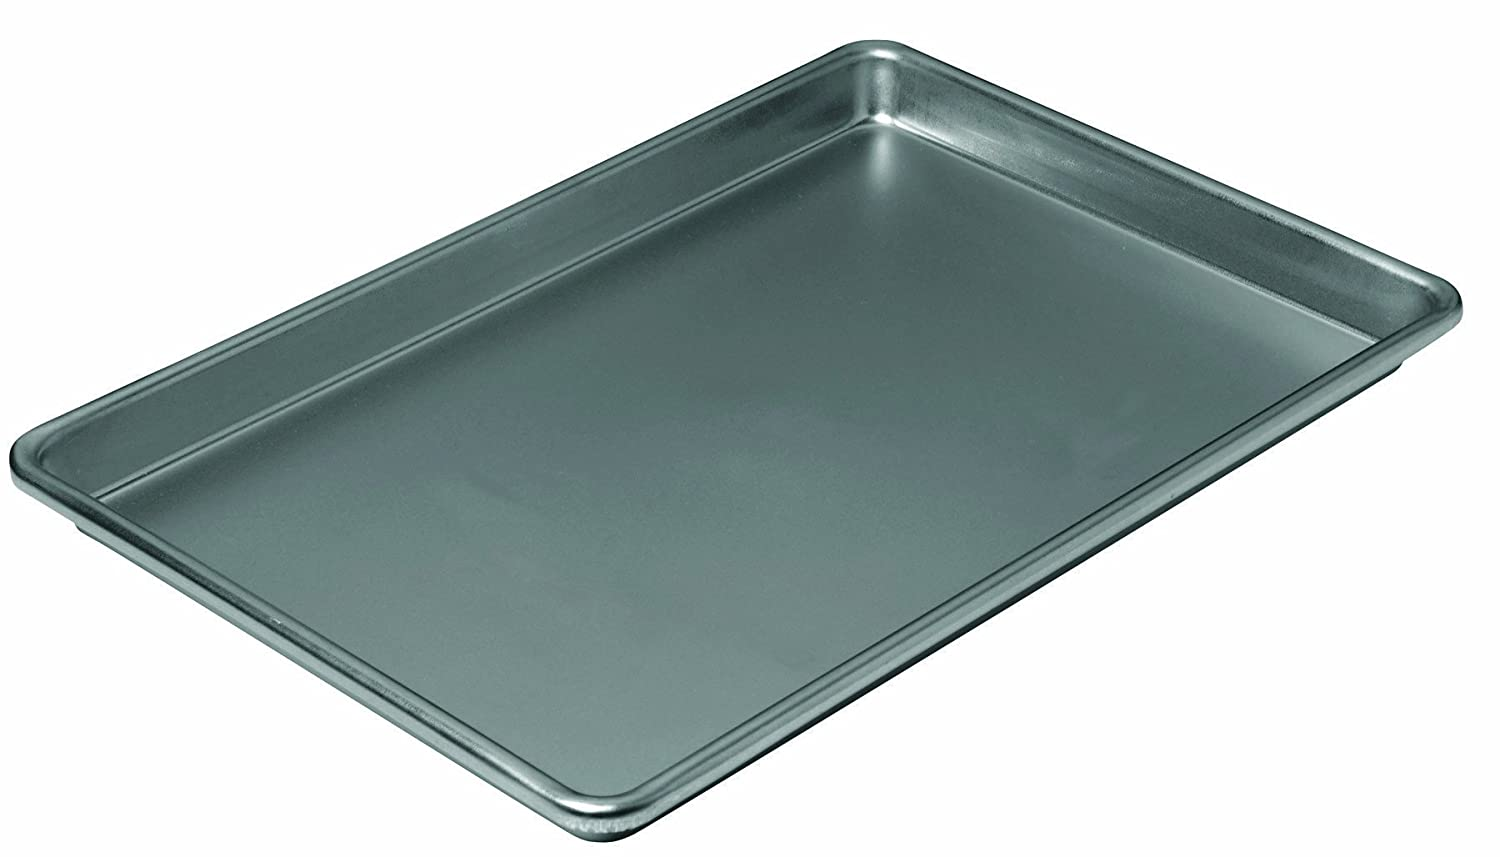 Chicago Metallic 16150 14-3/4 by 9-3/4-Inch Non-Stick True Jelly Roll Pan Amco Focus Products Group